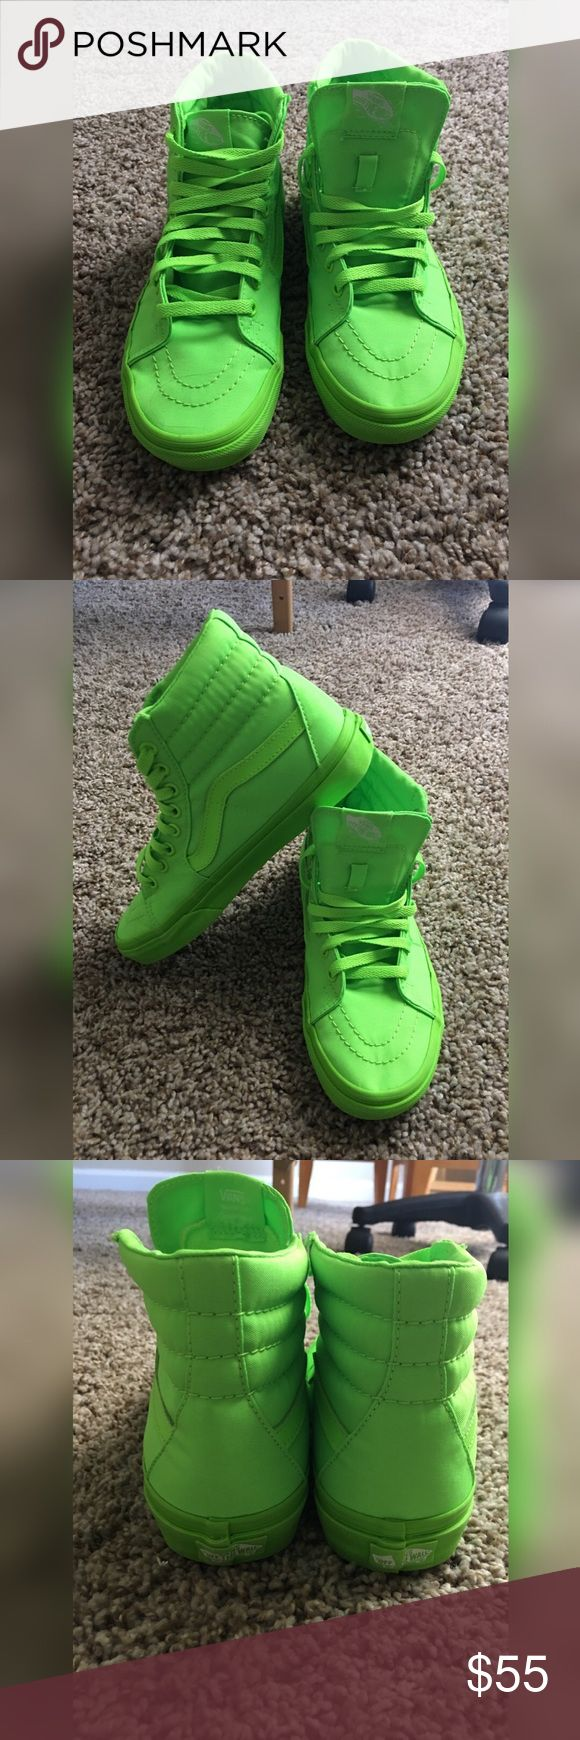 Lime green high top vans (Kids) Lime green boys size hightops worn Twice  Vans Shoes Sneakers